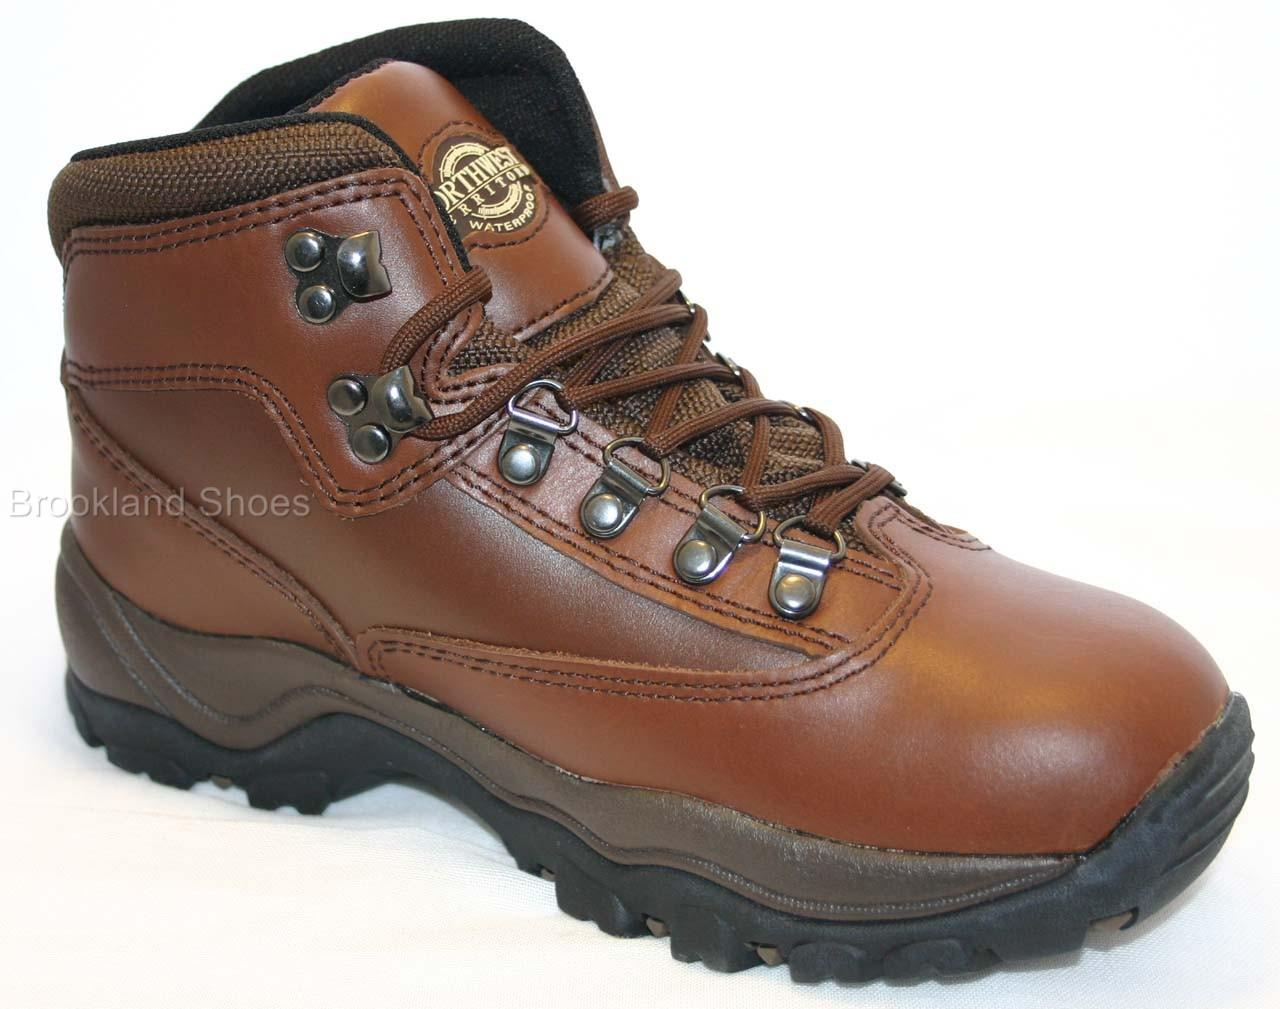 Cool Shop Our Extensive Selection Of Womens Boots How To Care For Hiking Boots How To Care For Hiking Boots From Overstockcom Our Guides Provide Customers With Information About How To Care For Hiking Boots How To Wear Knee